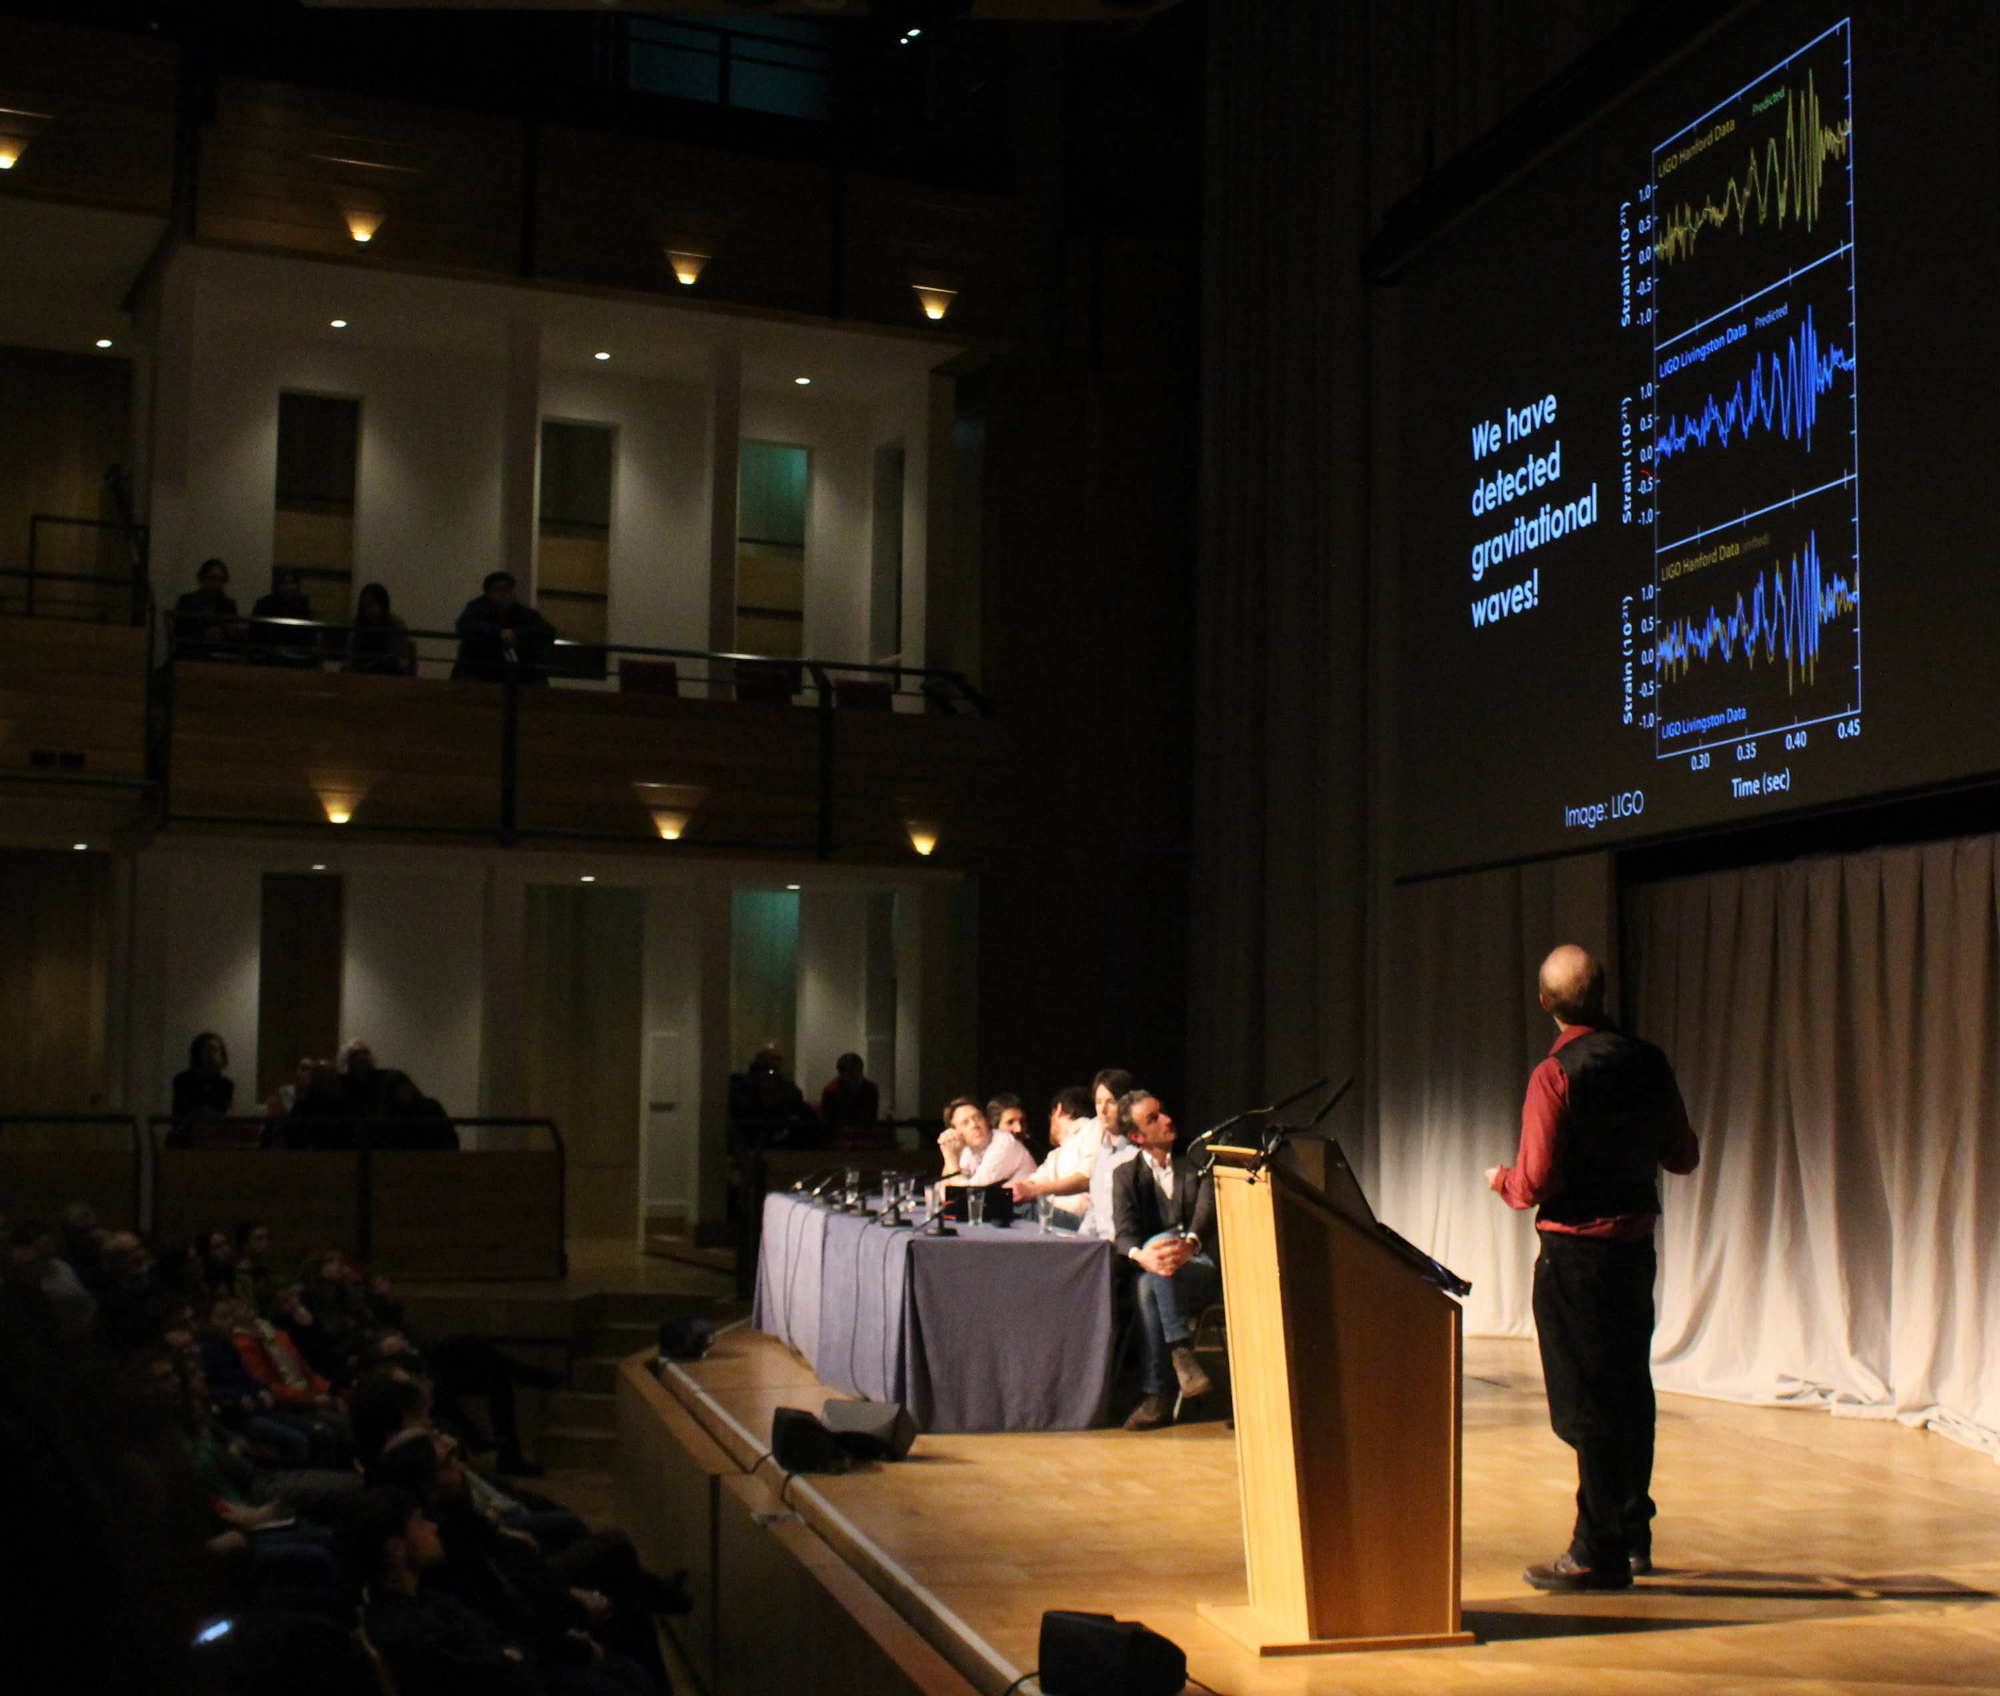 We have detected gravitational waves! Christopher Berry presenting the results in the Elgar Concert Hall, of the Bramall Music Building. Image credit: Hannah Middleton